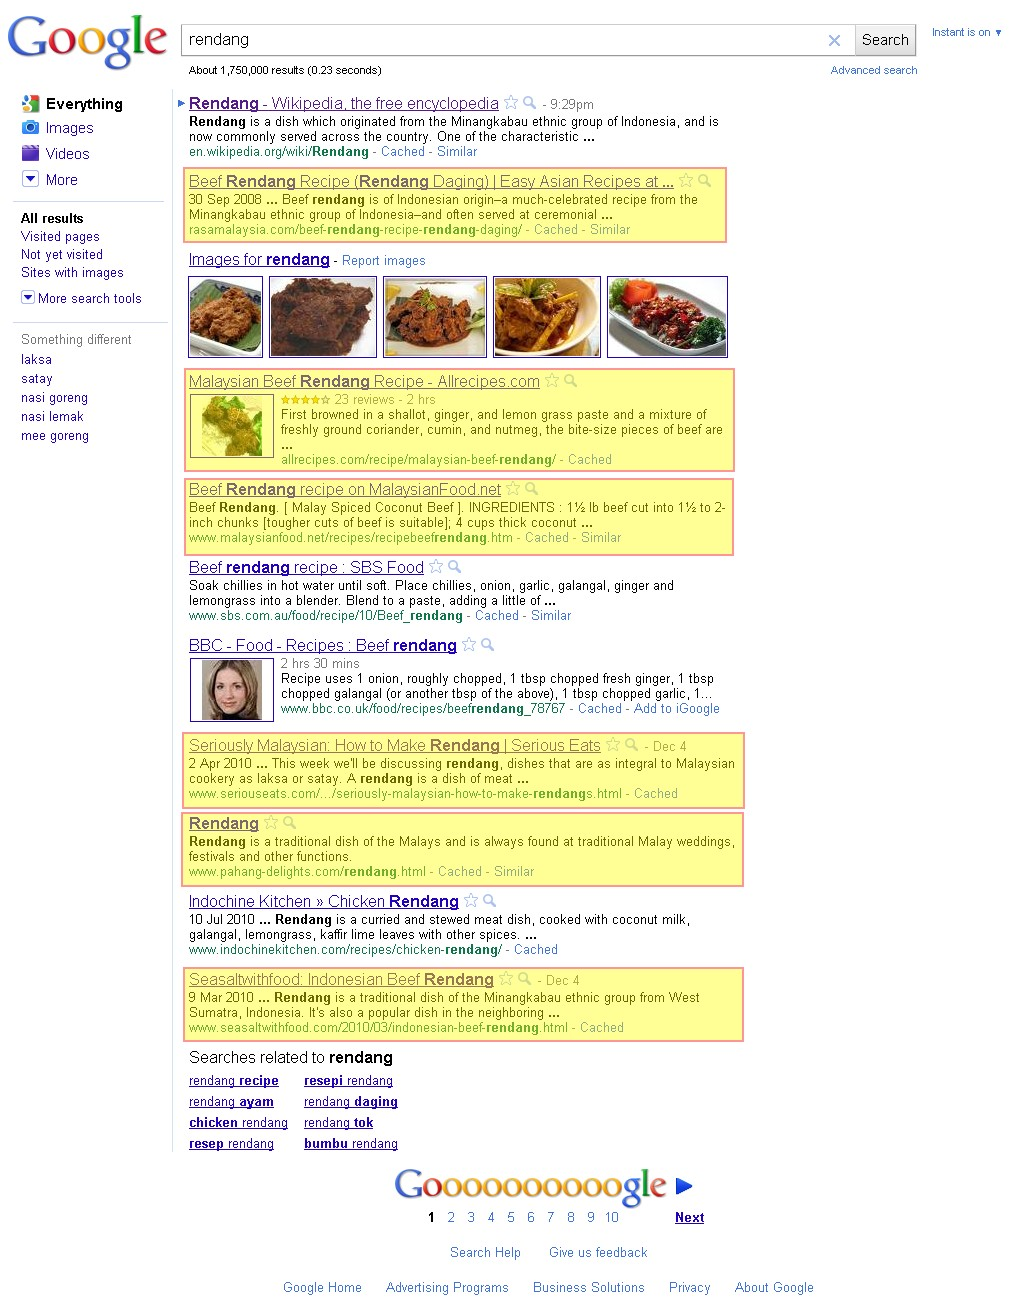 Google search result on rendang